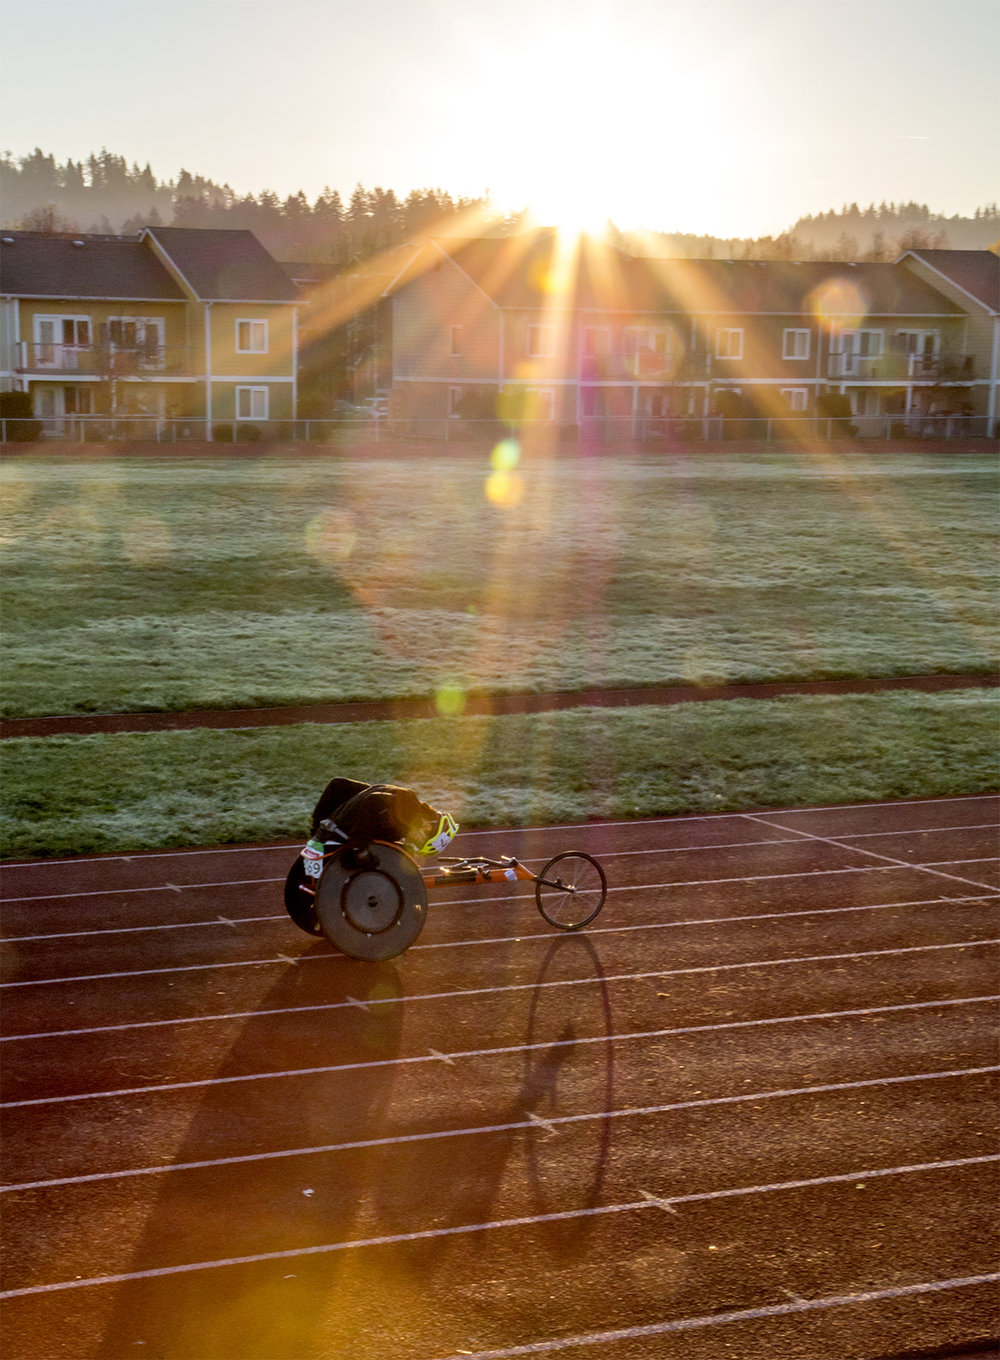 The sun rises above the South Eugene Eugene High School track, a light dusting of frost covers the grass in the early morning, and John Robert steadily grinds away at his workout with his head down. Roberts has been a para-athlete since he was 12 years old. His racing team has taken him to such places as the worlds championships in New Zealand to the Olympic games in Rio. The South Eugene Track is both a nearby place to train and a reminder of his time attending South Eugene High School